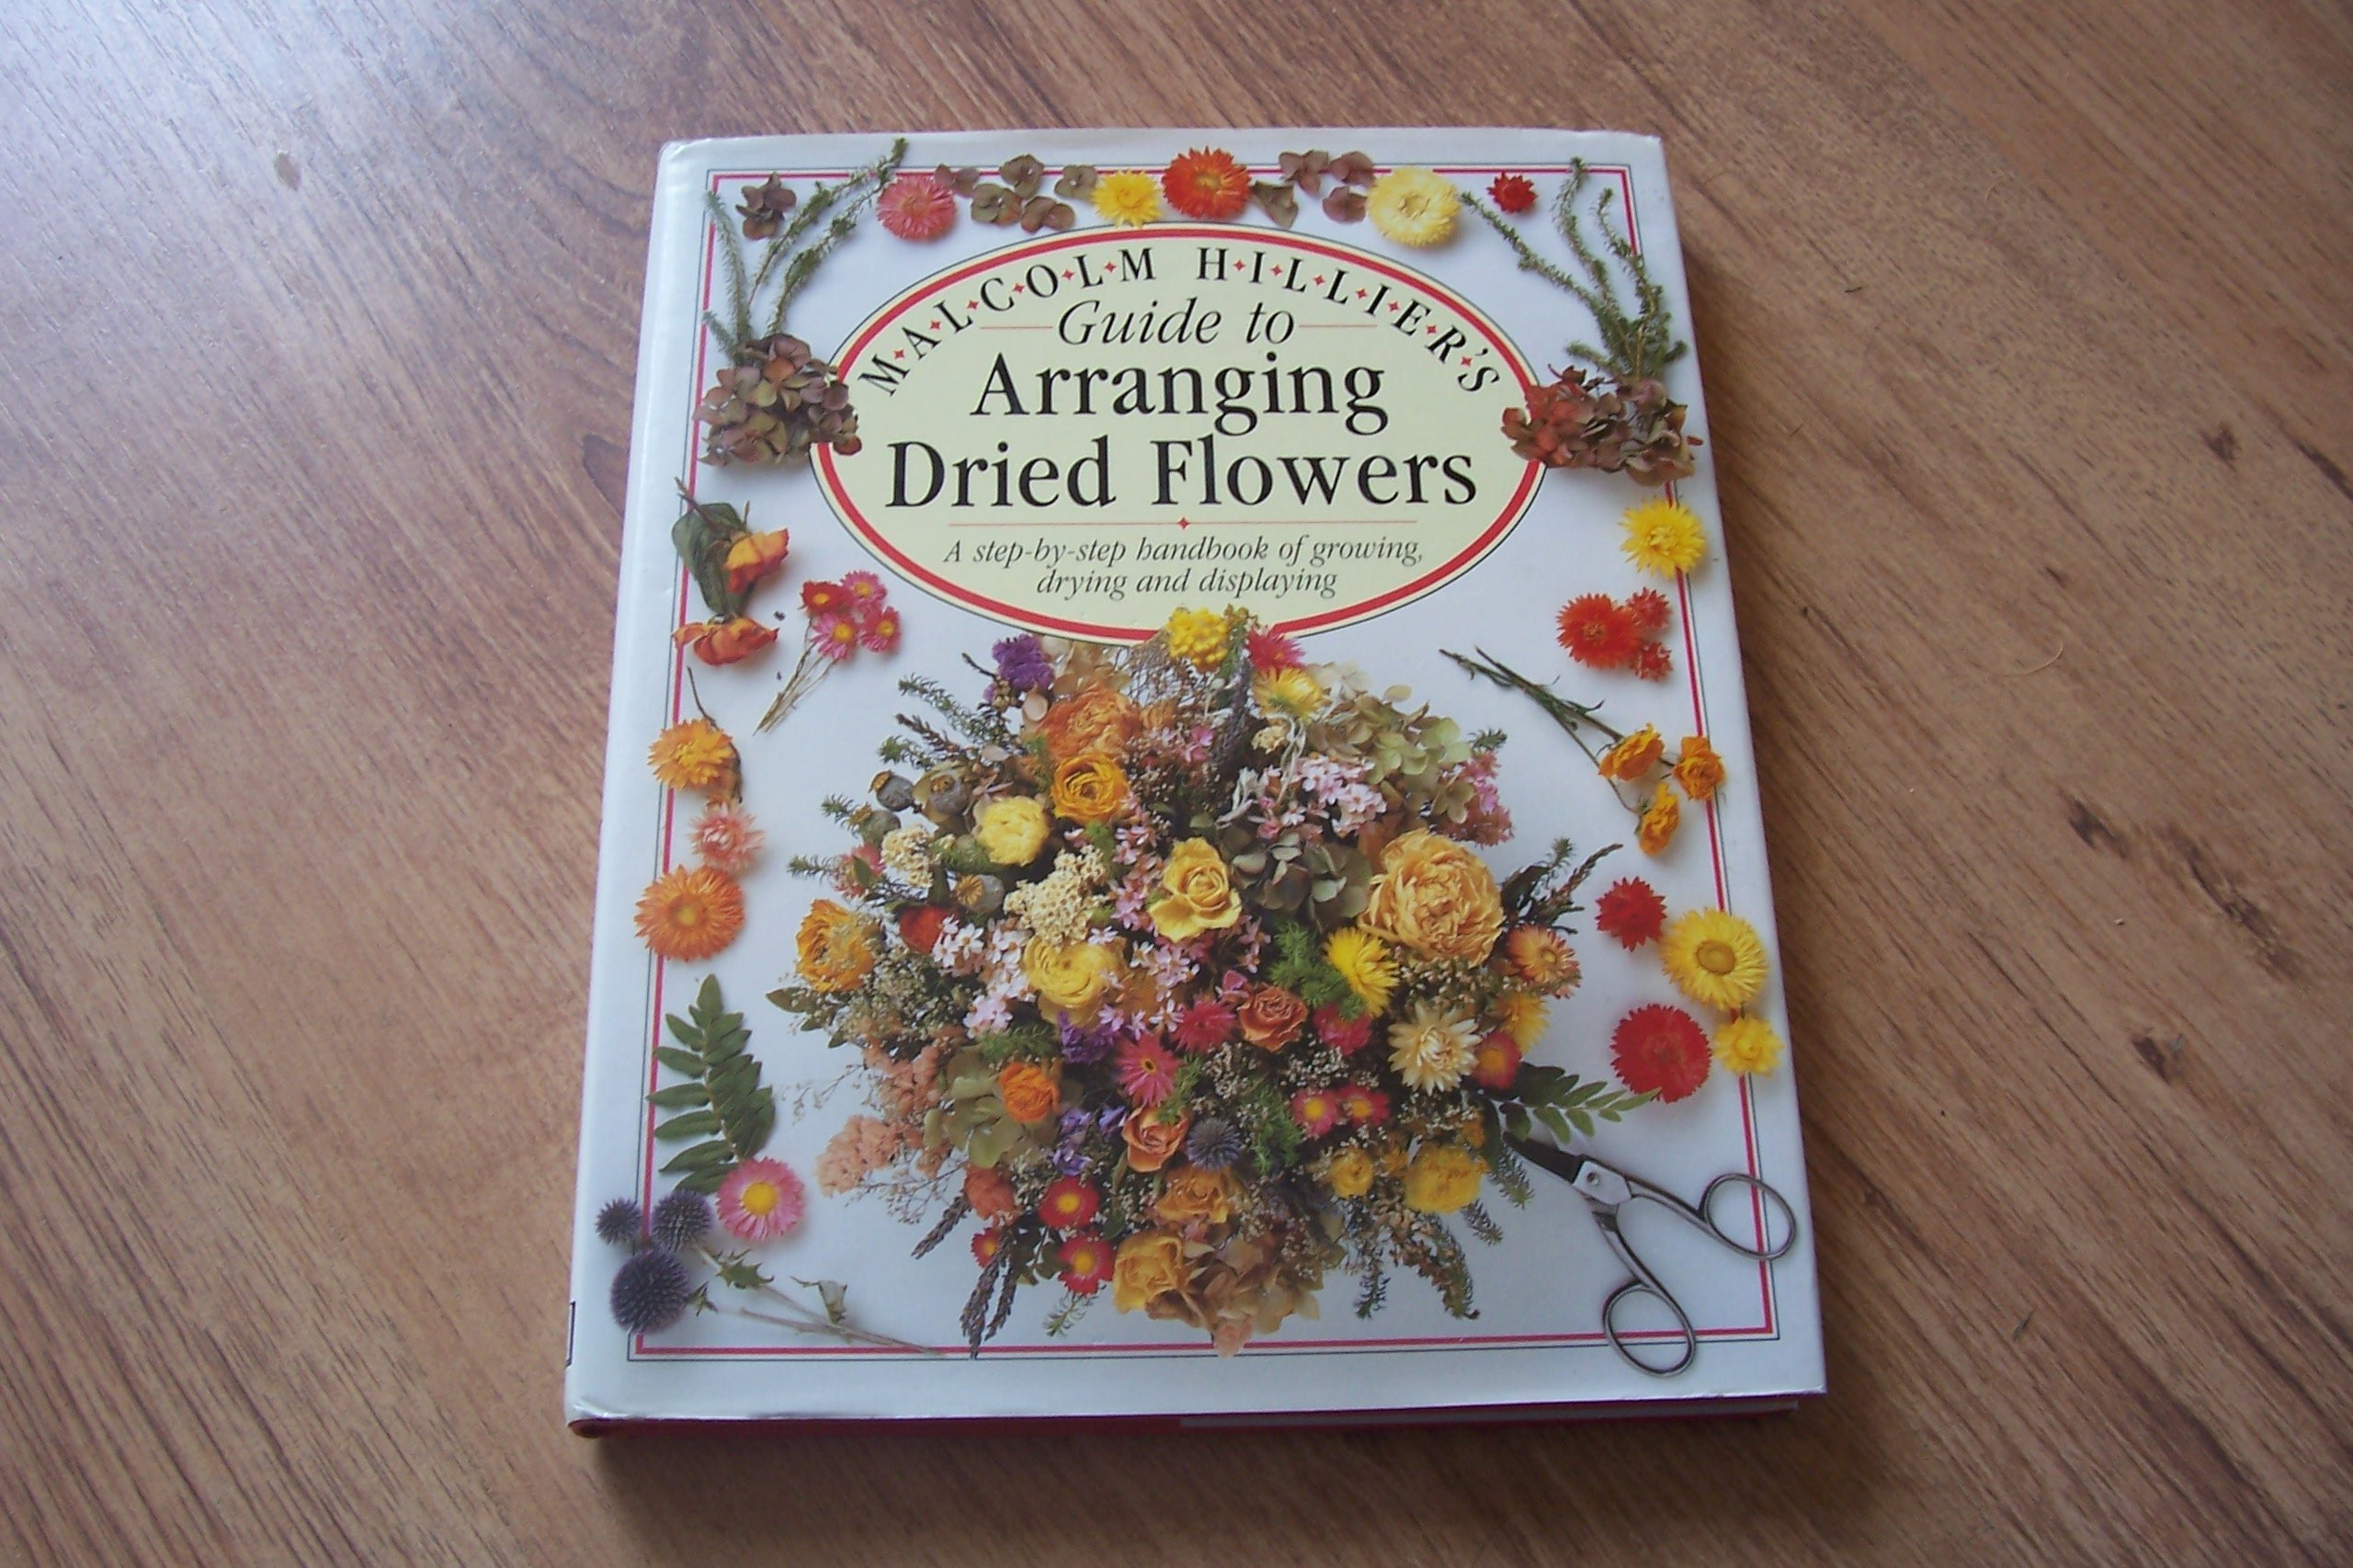 Malcolm Hillier's Guide To Arranging Dried Flowers